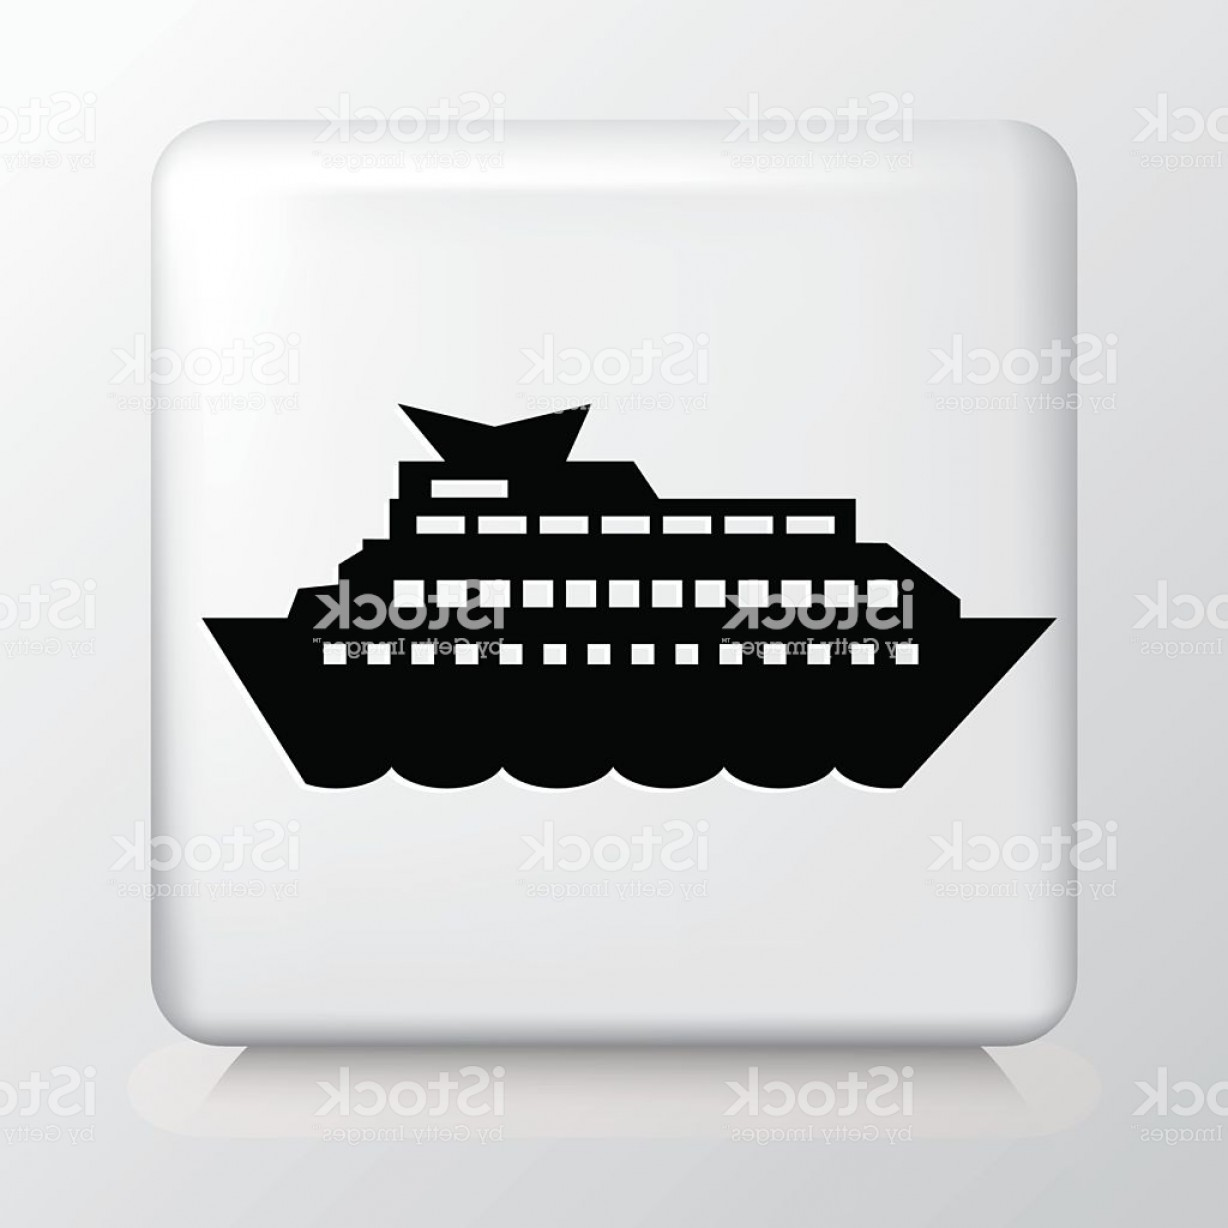 Waves With Cruise Ship Silhouette Vector: Square White Icon With Silhouette Cruise Ship In The Ocean Gm